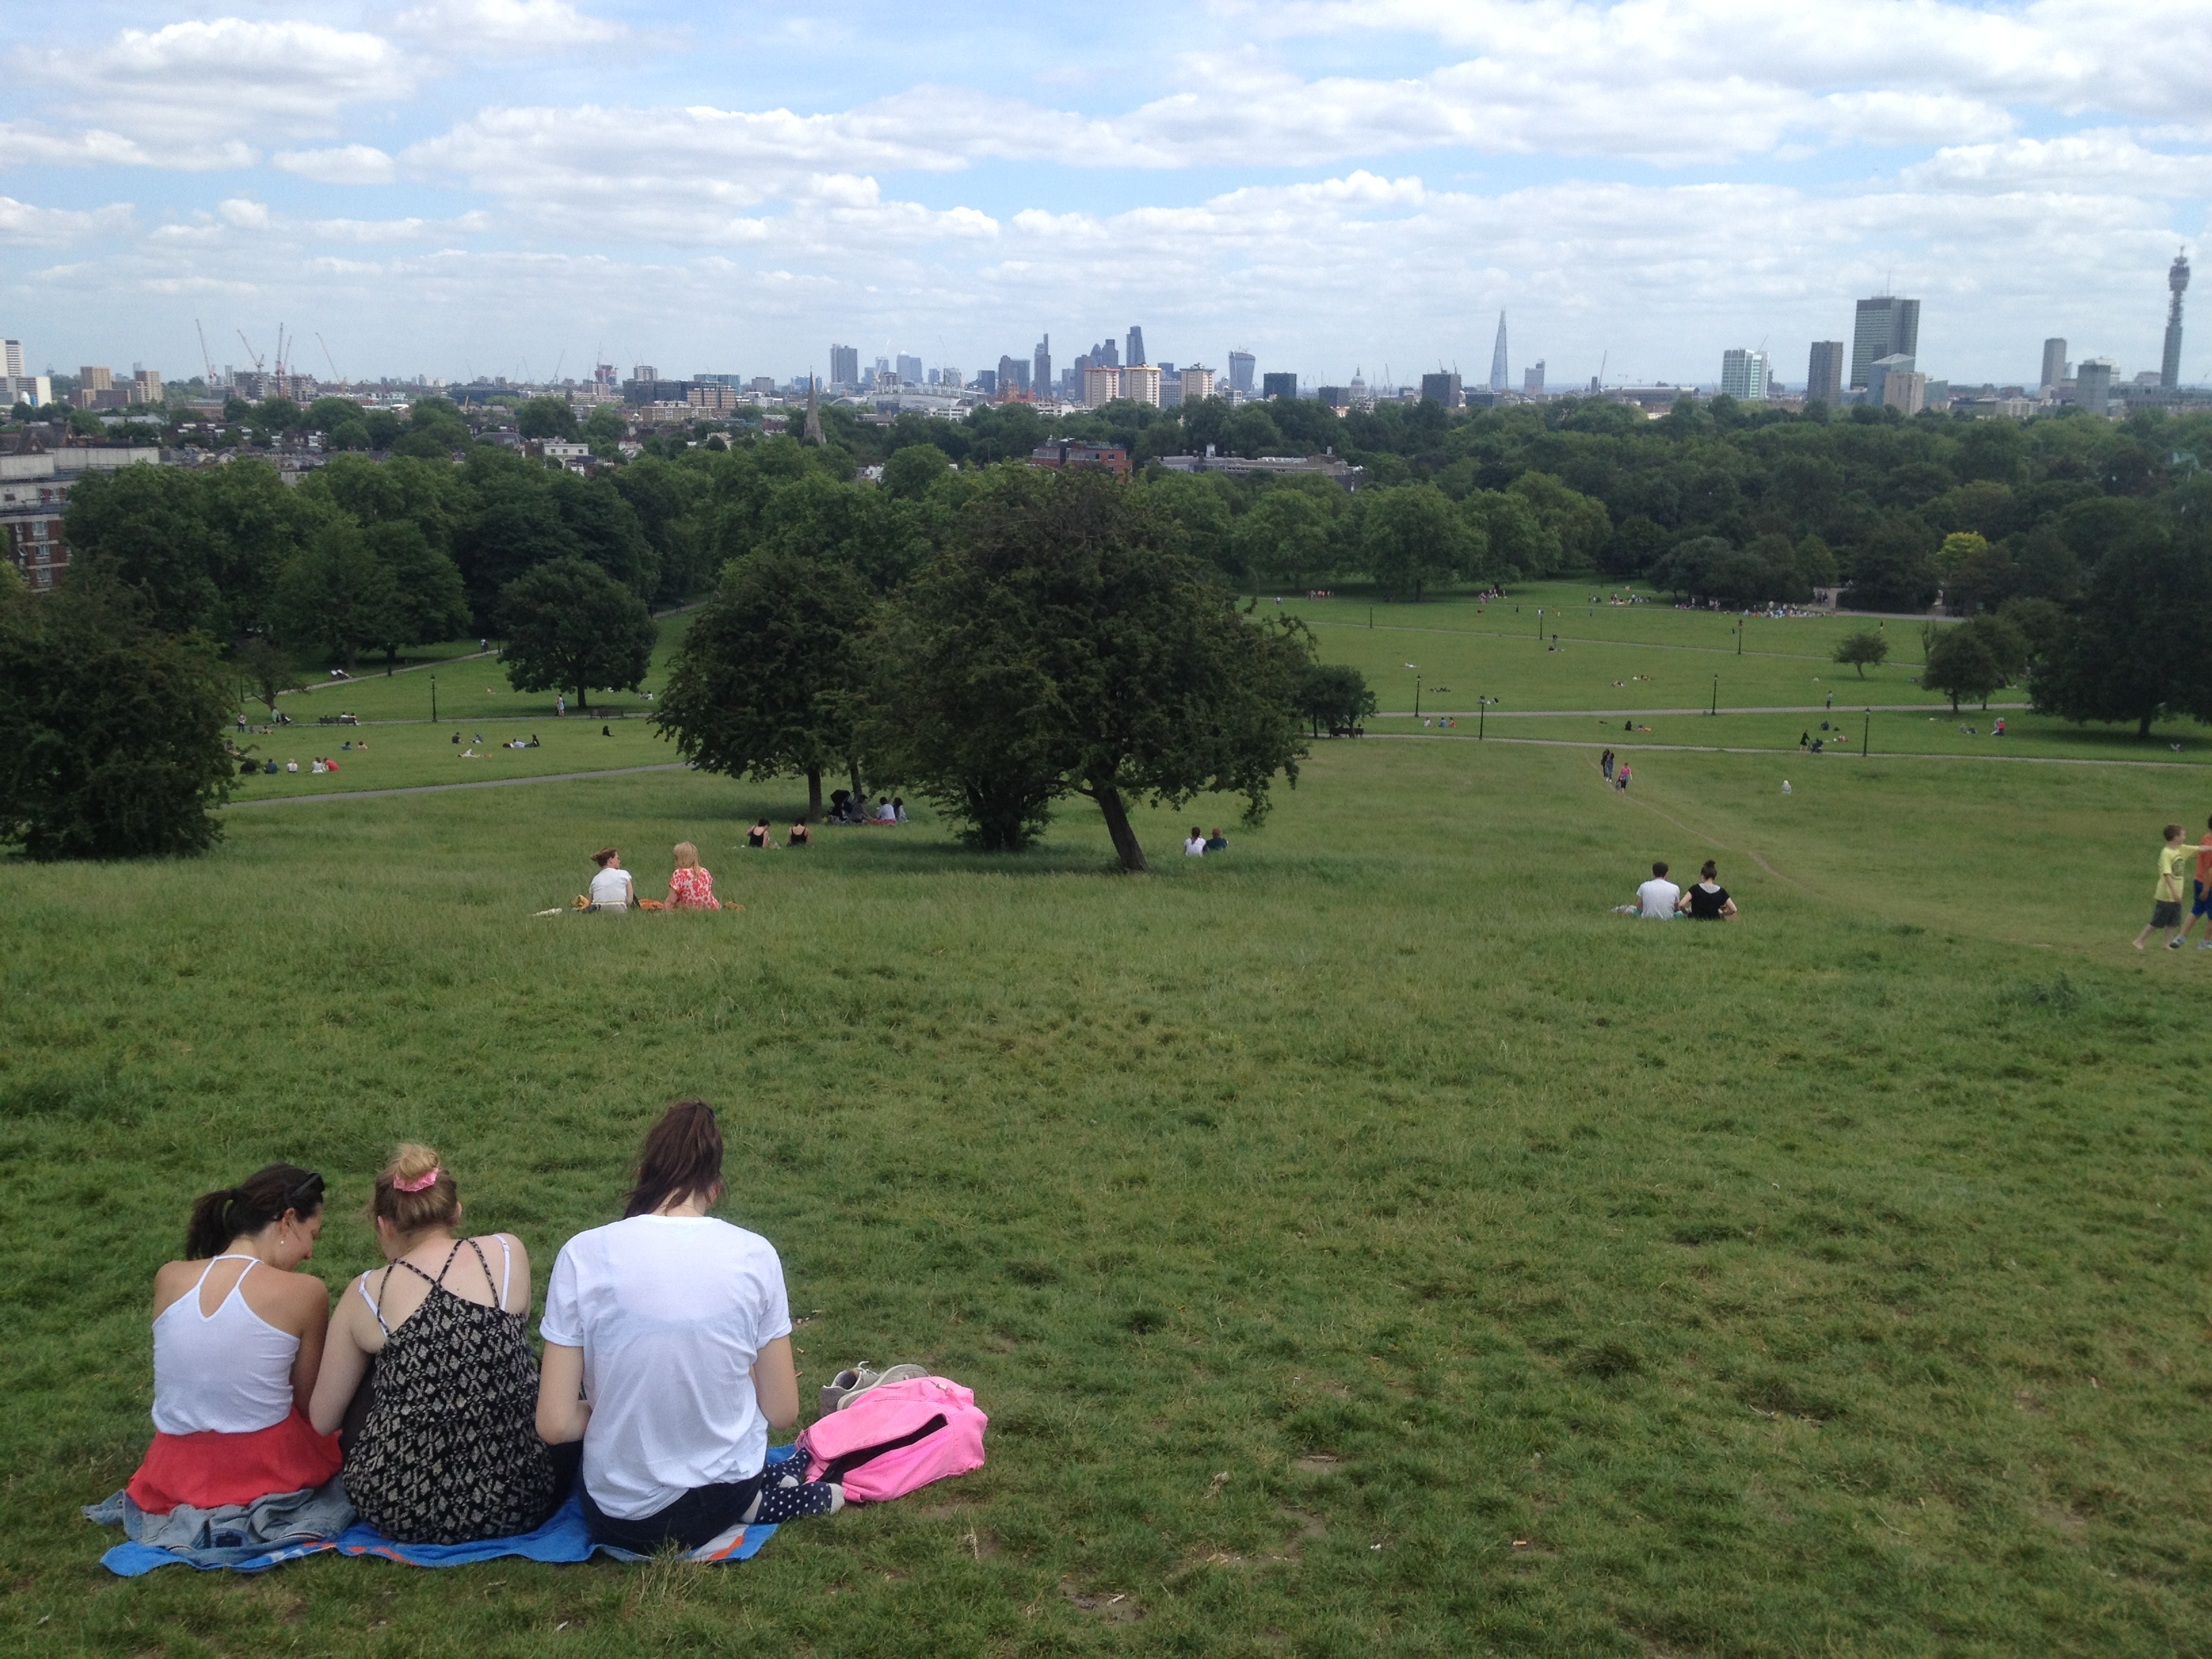 Views of London from Primrose Hill